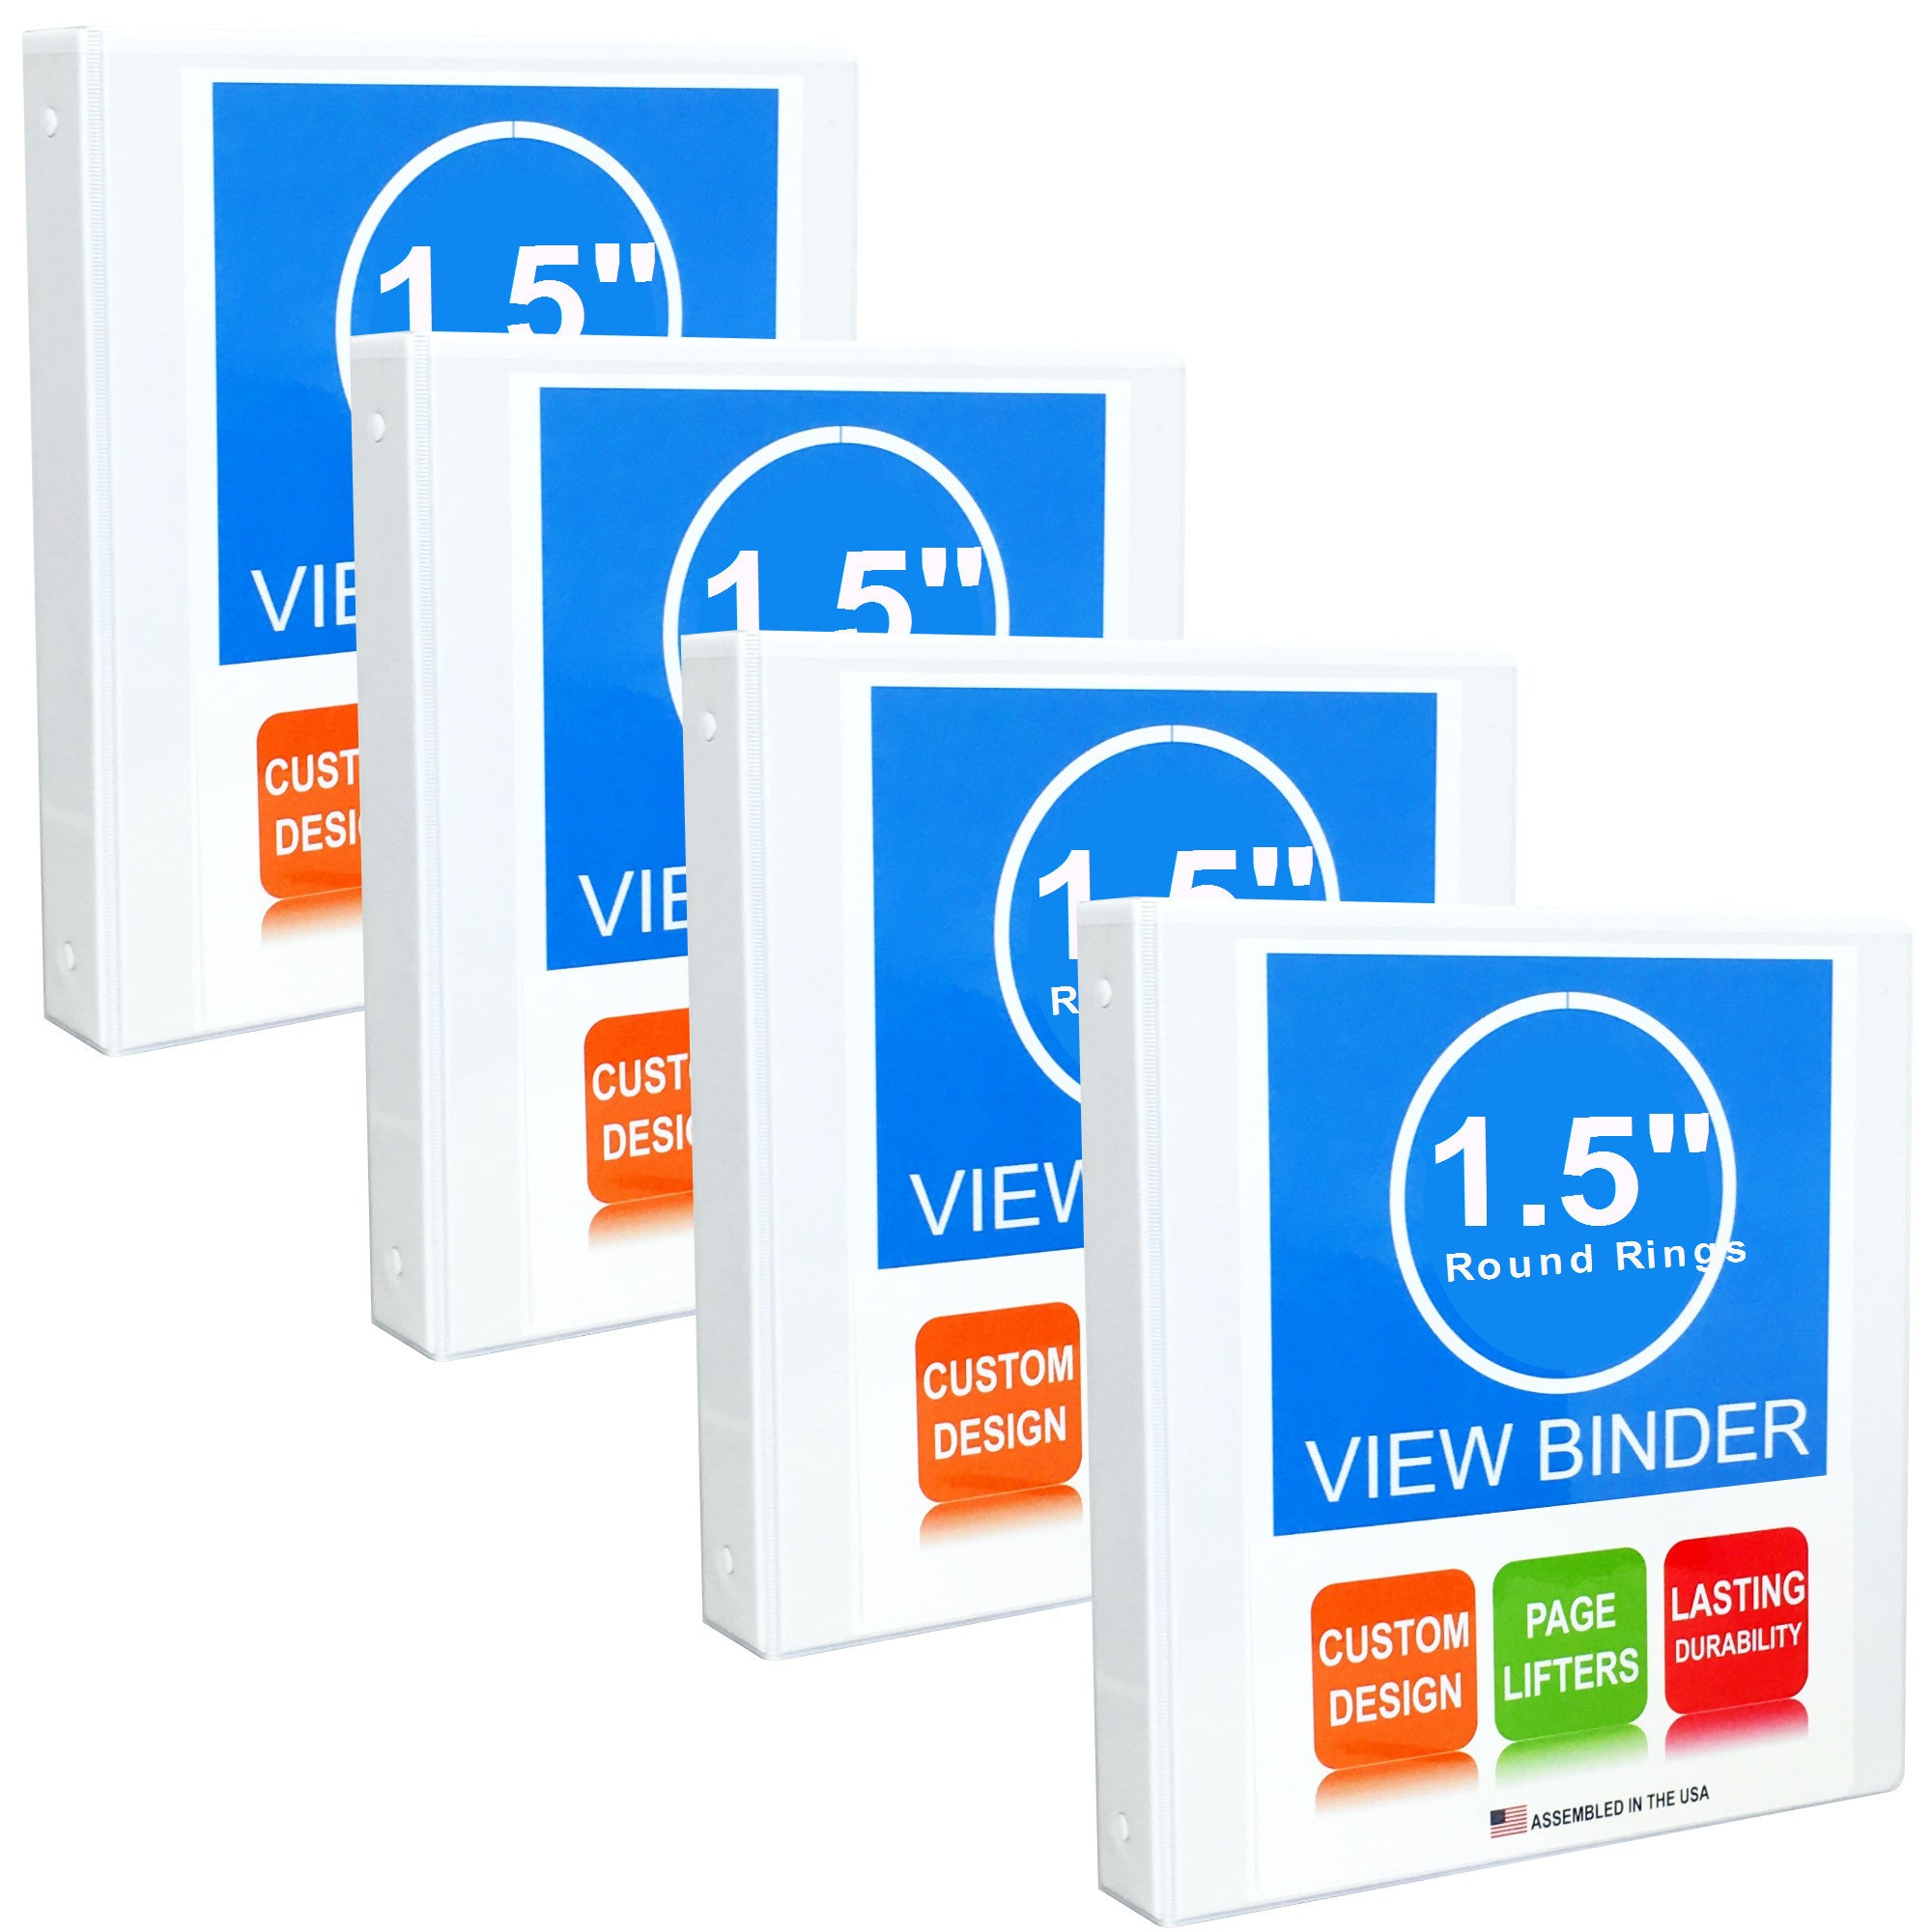 3 Ring Binder, 1.5 Inch Round Rings, White, Clear View, Pockets, 4 Pack - RingBinderDepot.com